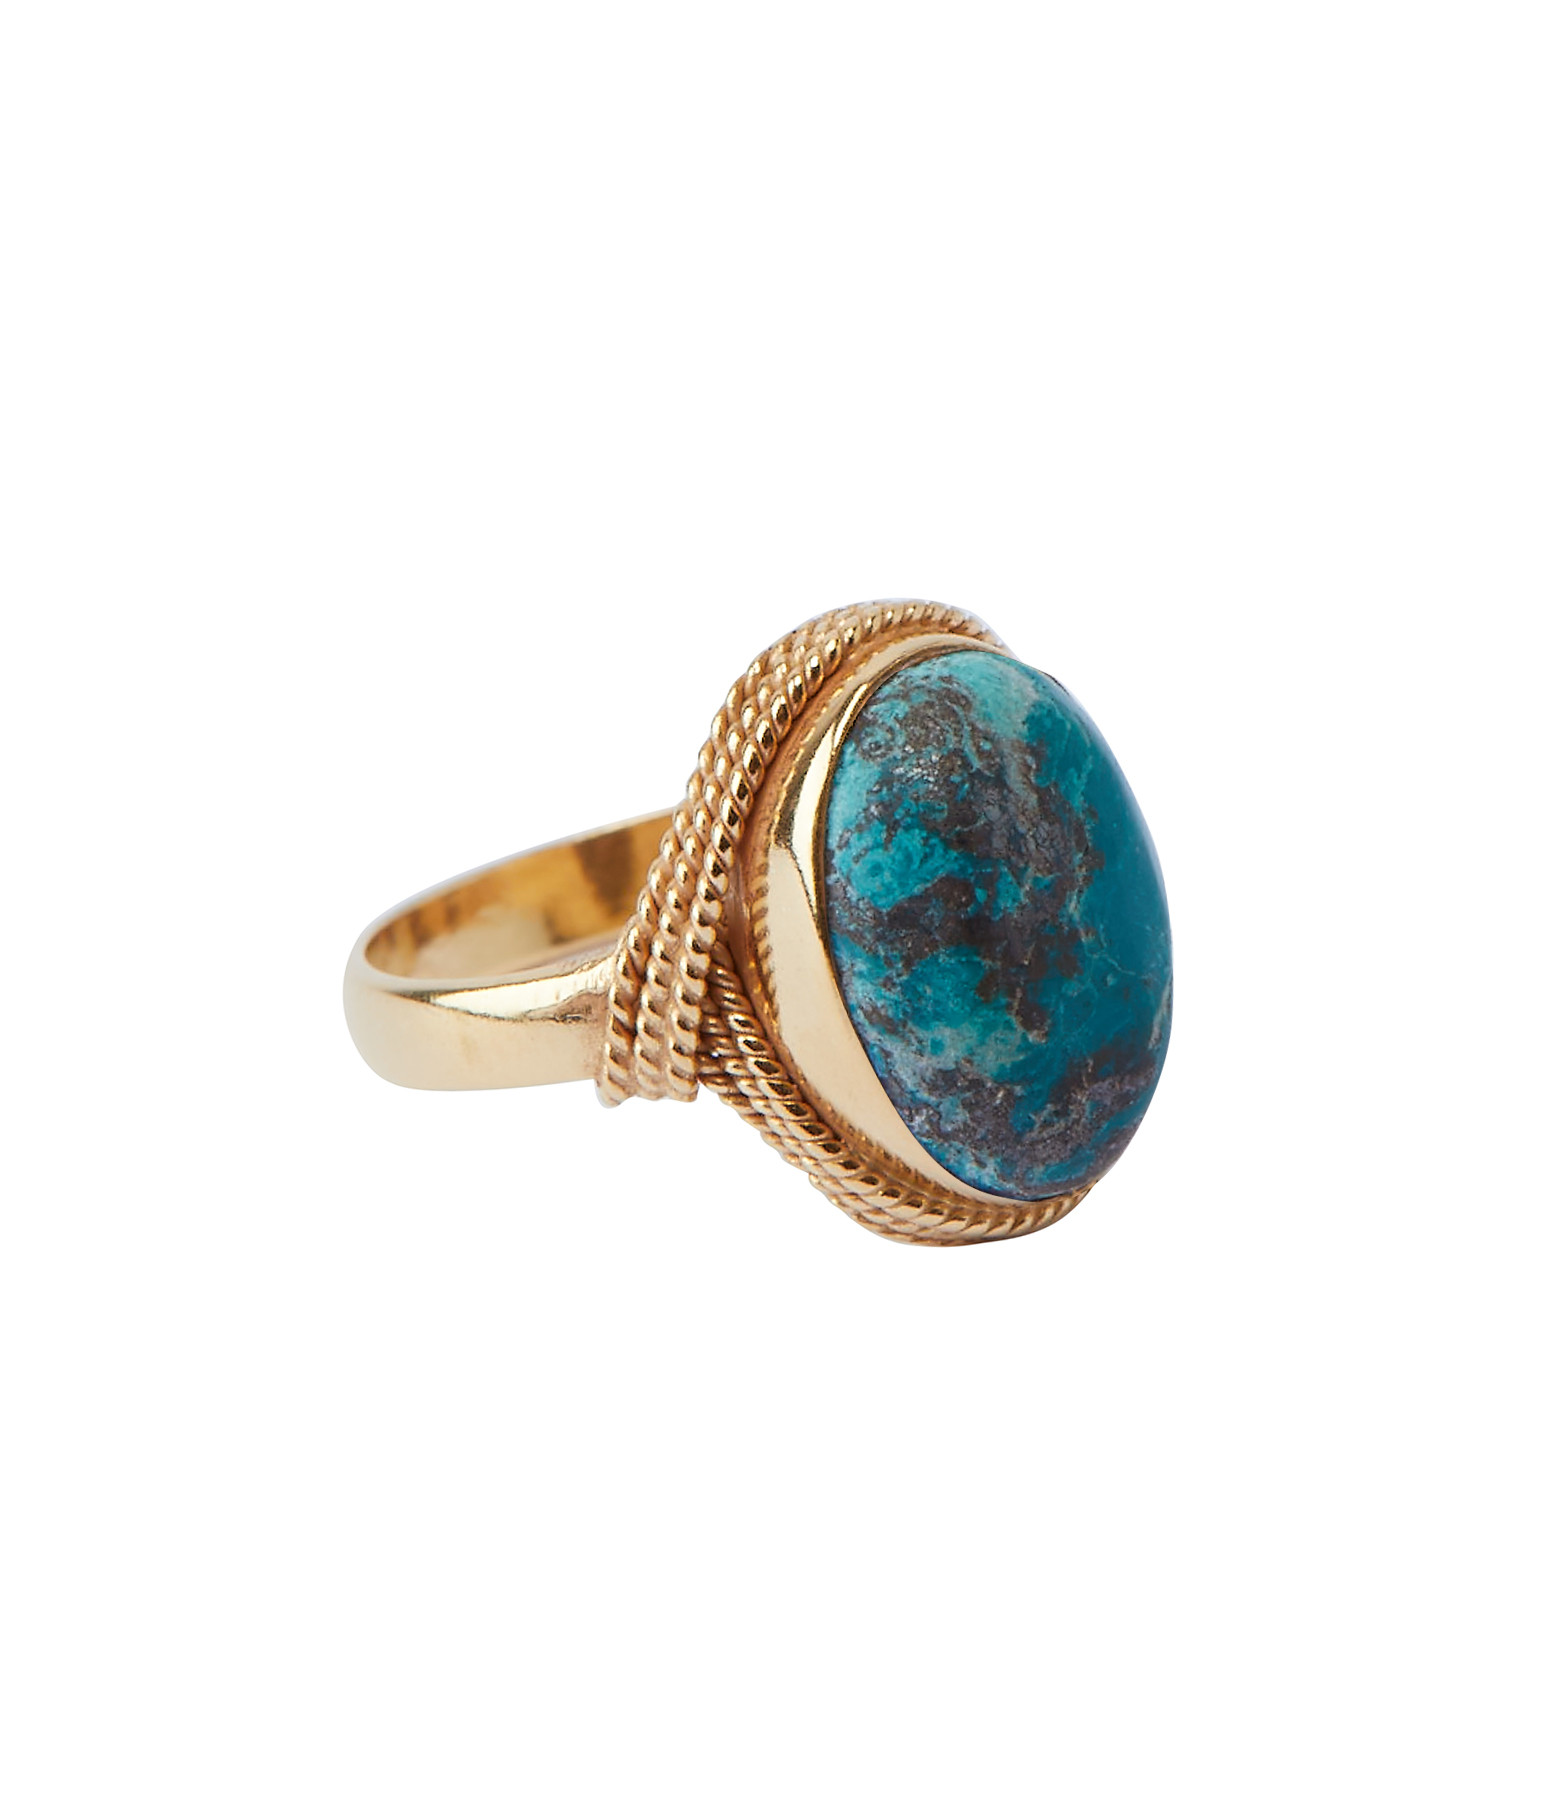 VADI JEWELS - Bague Sphinx Cabochon Chrysocolle Plaqué Or